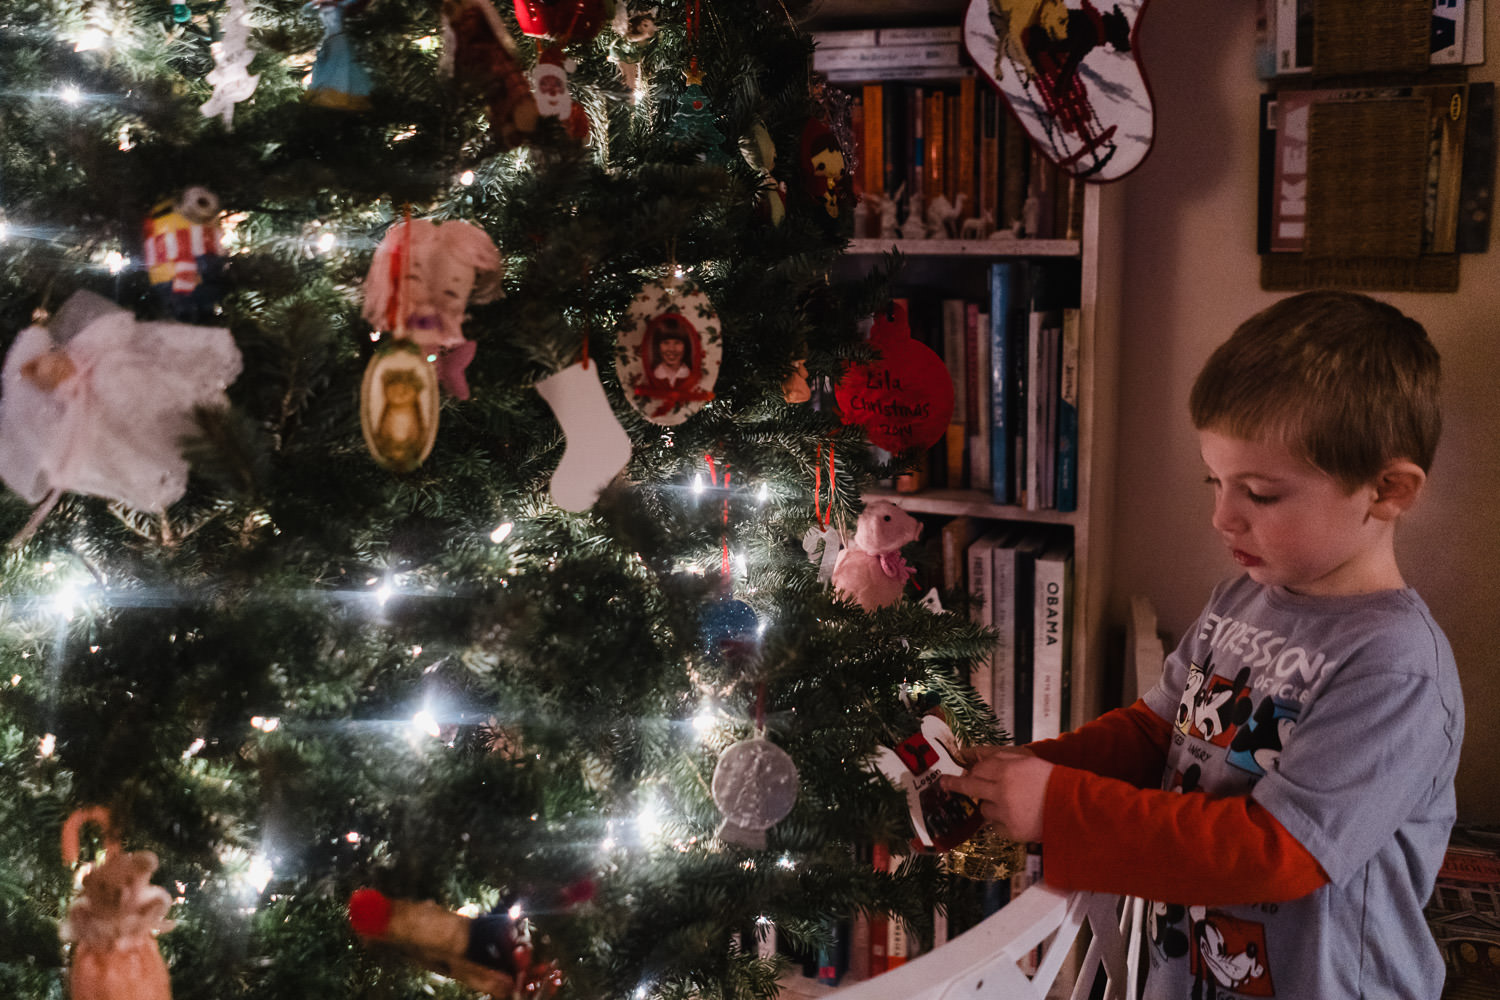 A little boy looks at the ornaments on a Christmas tree.